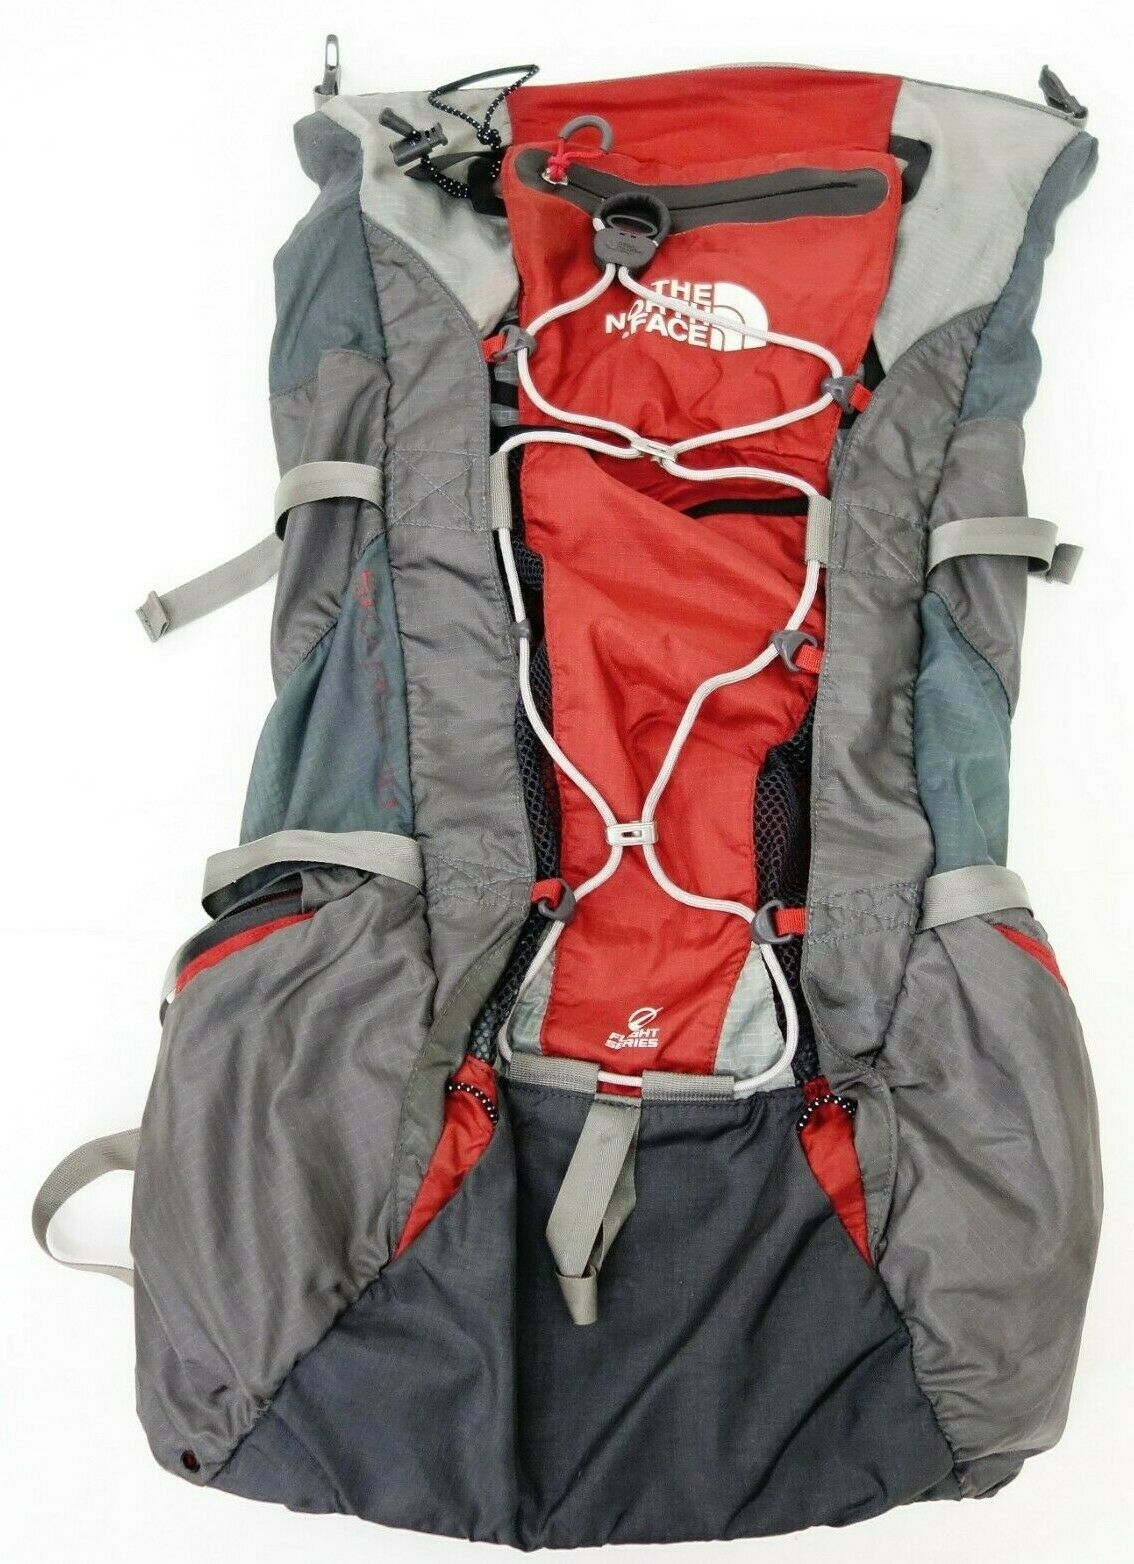 The North Face Skareb 40 Backpack Travel Mountain Hiking Backpacking P...